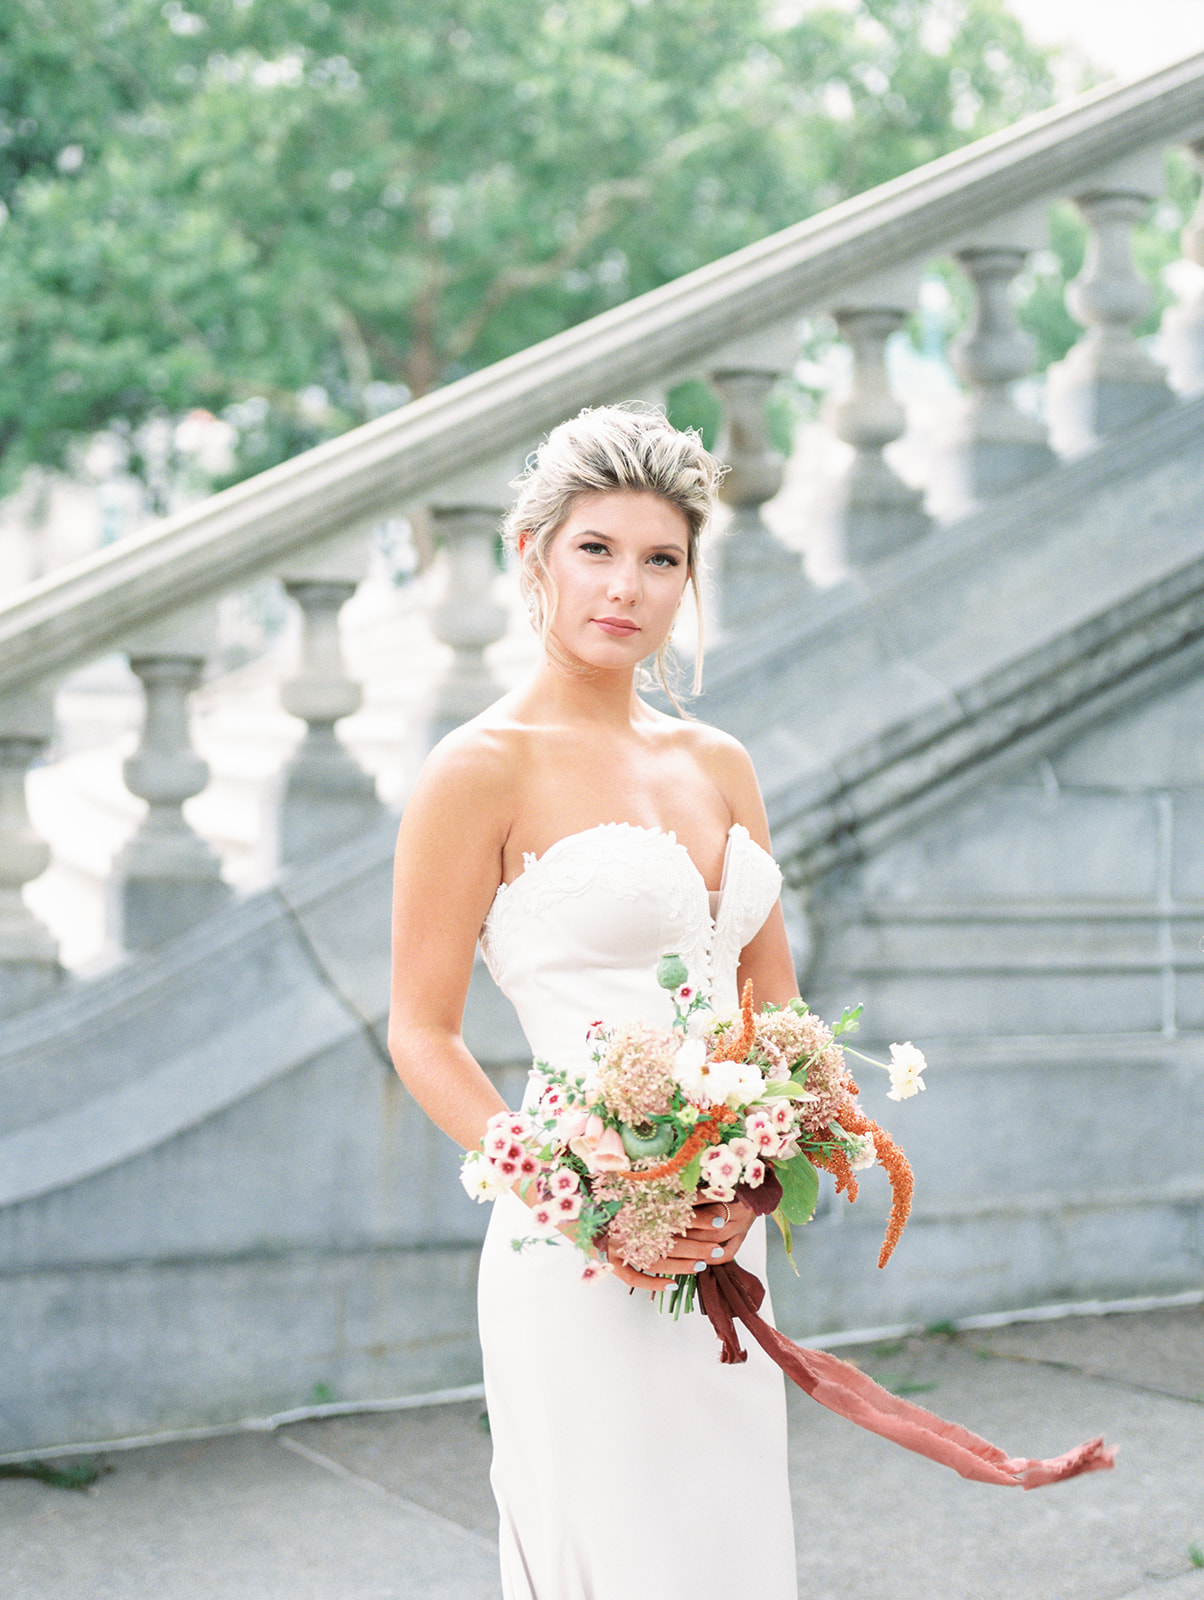 July Editorial with Angela_s Bridal by Michelle Lange Photography-96.jpg